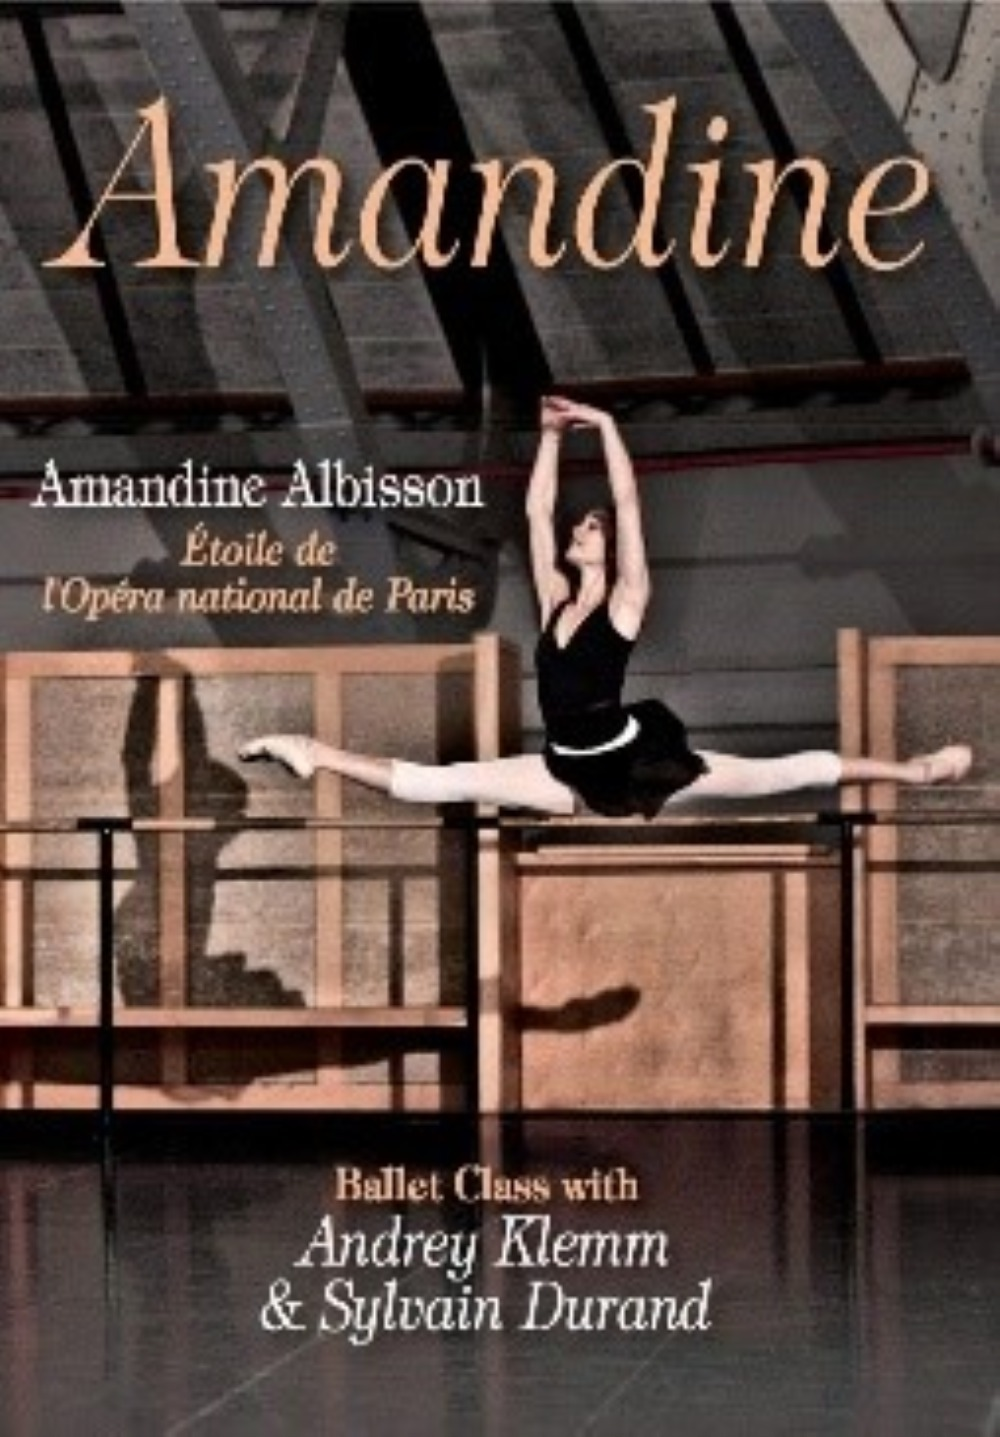 BALLET CLASS WITH ANDRY KLEMM/AMANDINE